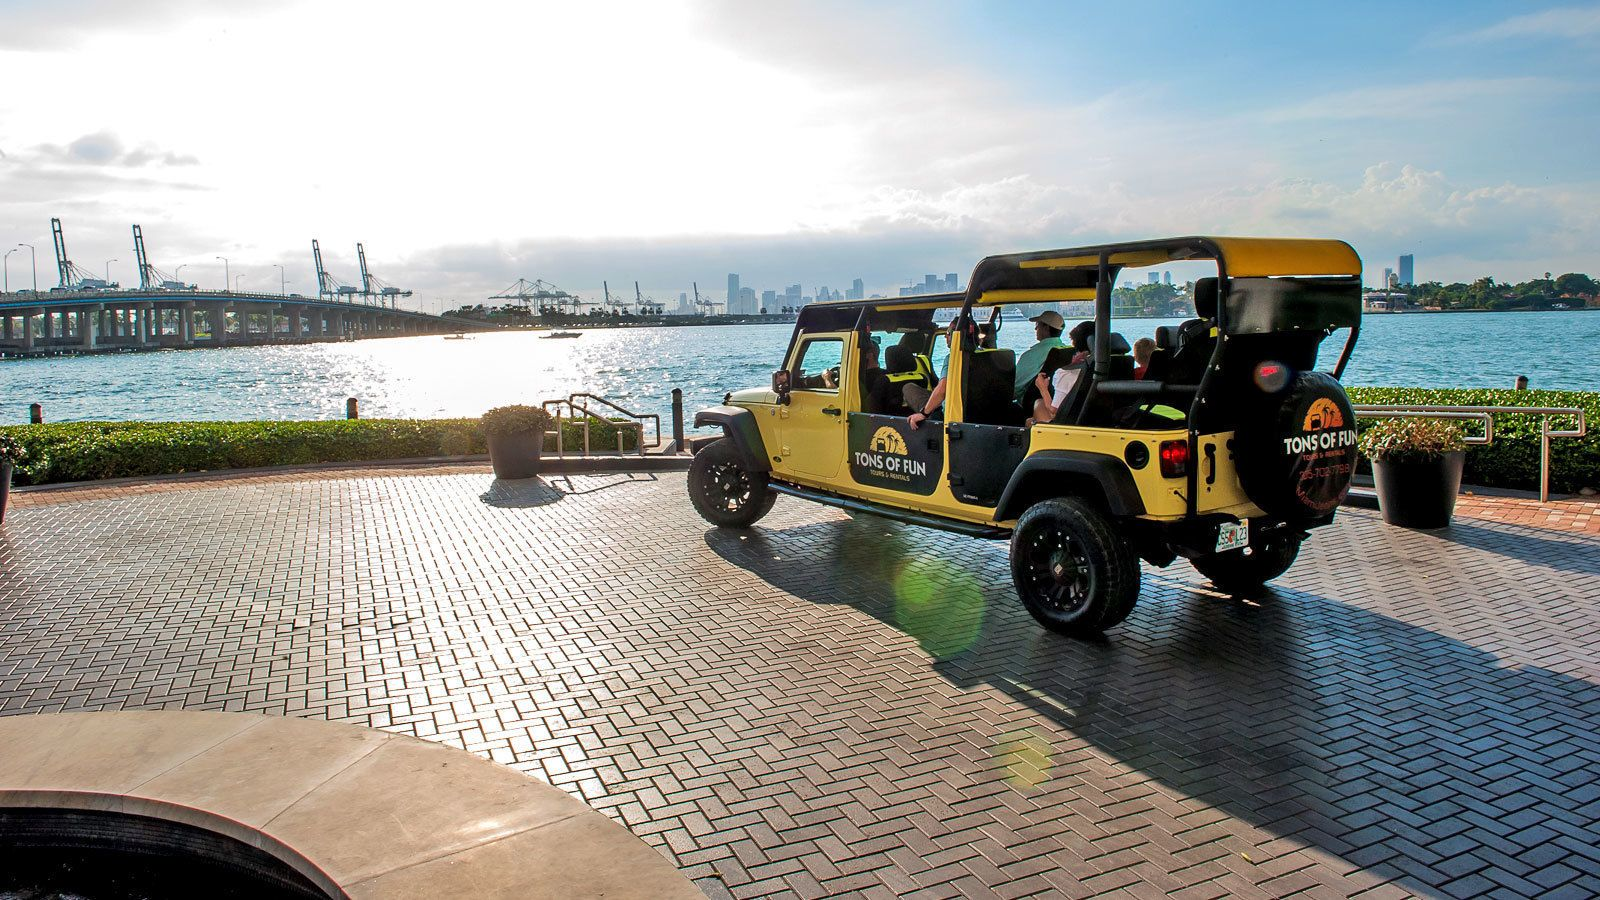 Open-aired Tons of Fun jeep parked near Biscayne Bay in Miami